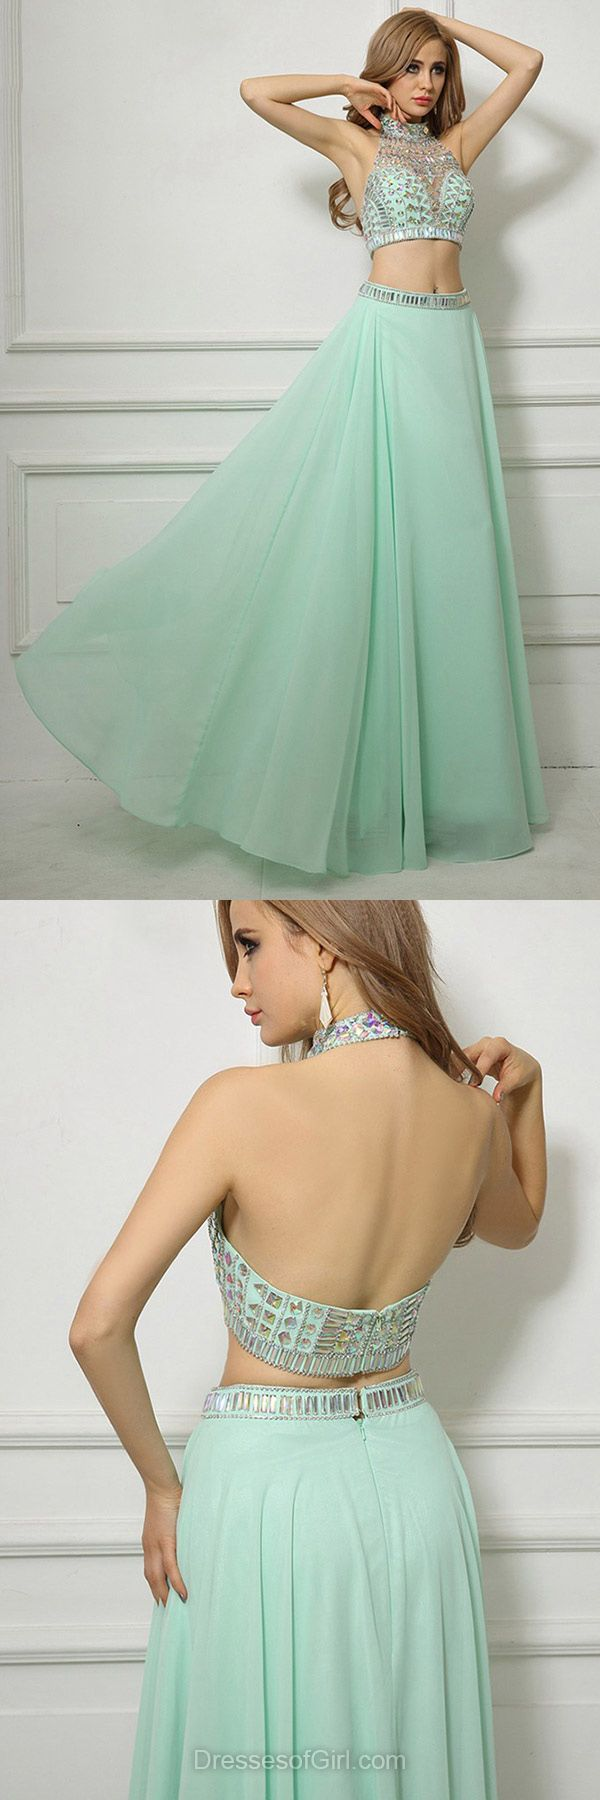 Green Prom Dress, Long Prom Dresses, Two Piece Evening Gowns, High Neck Party Dresses, A-line Formal Dresses